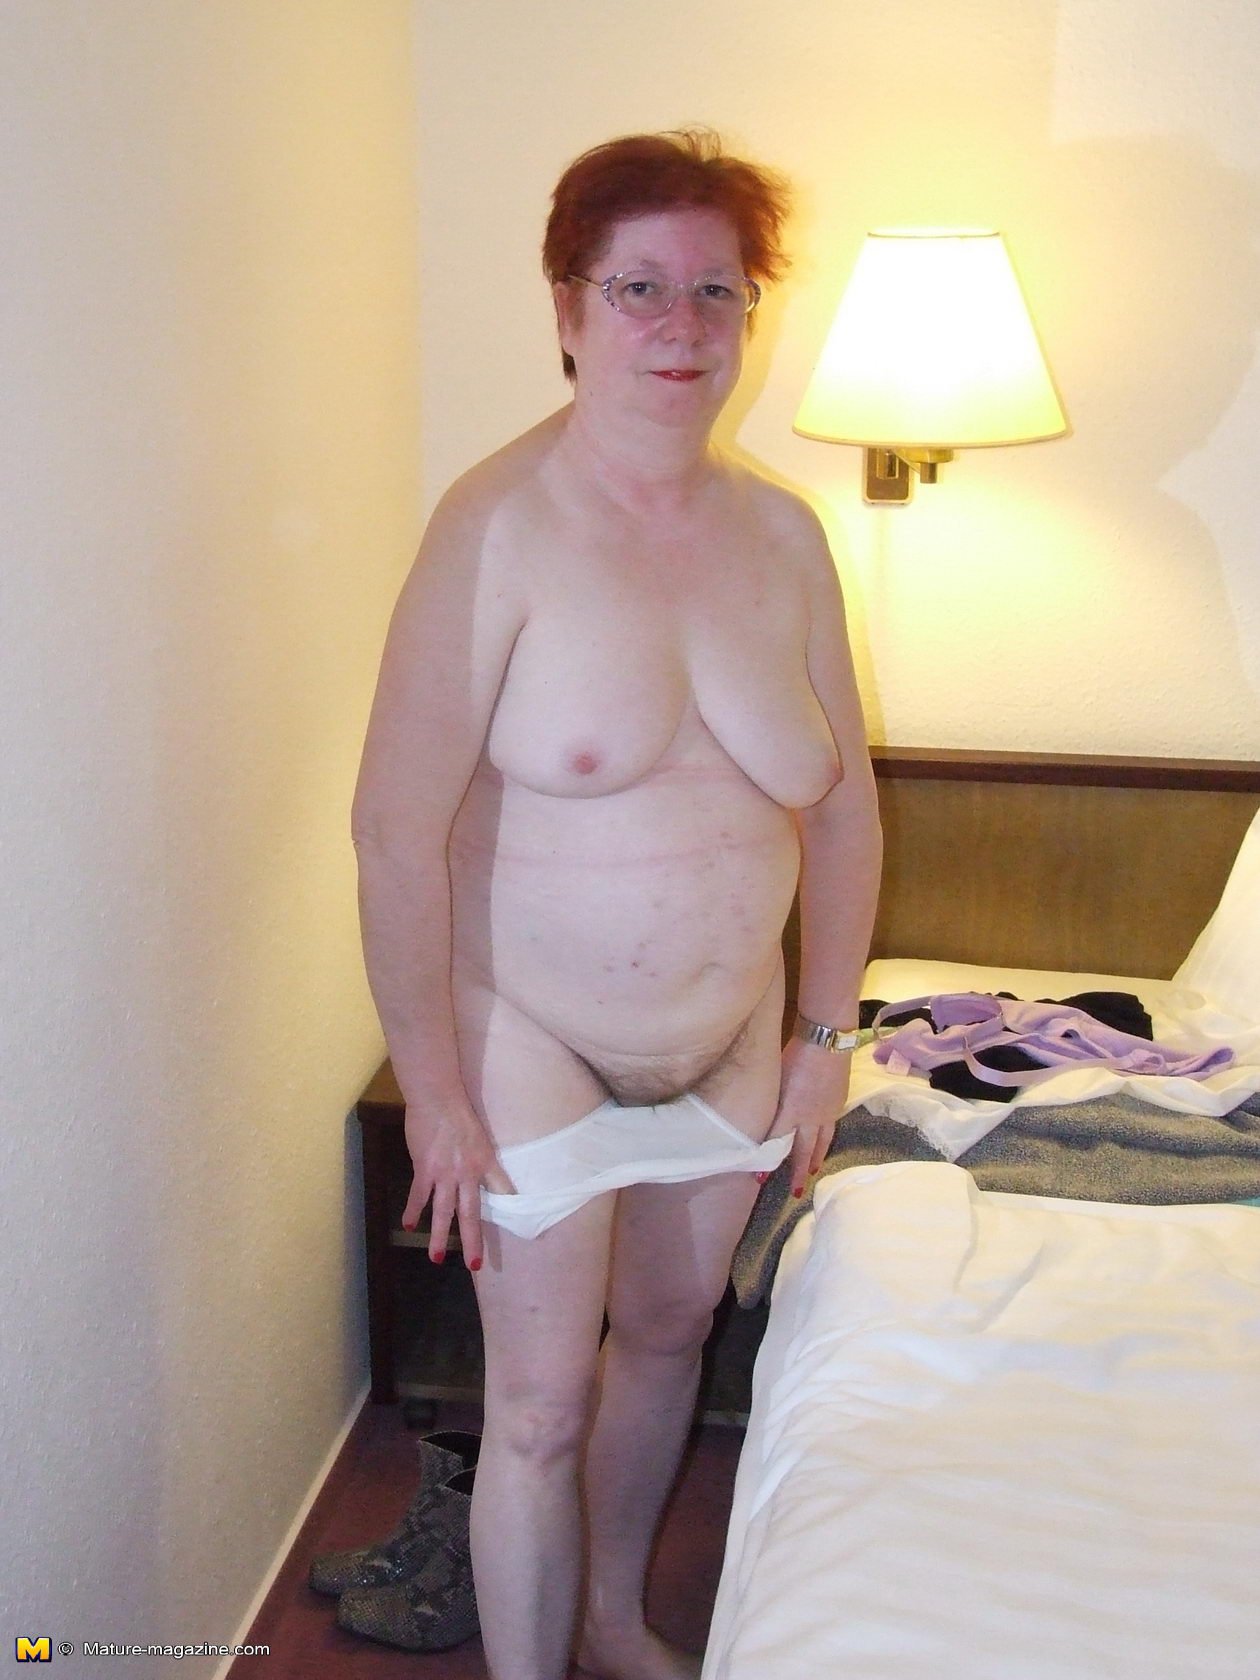 now don't know Large naked mature women work full